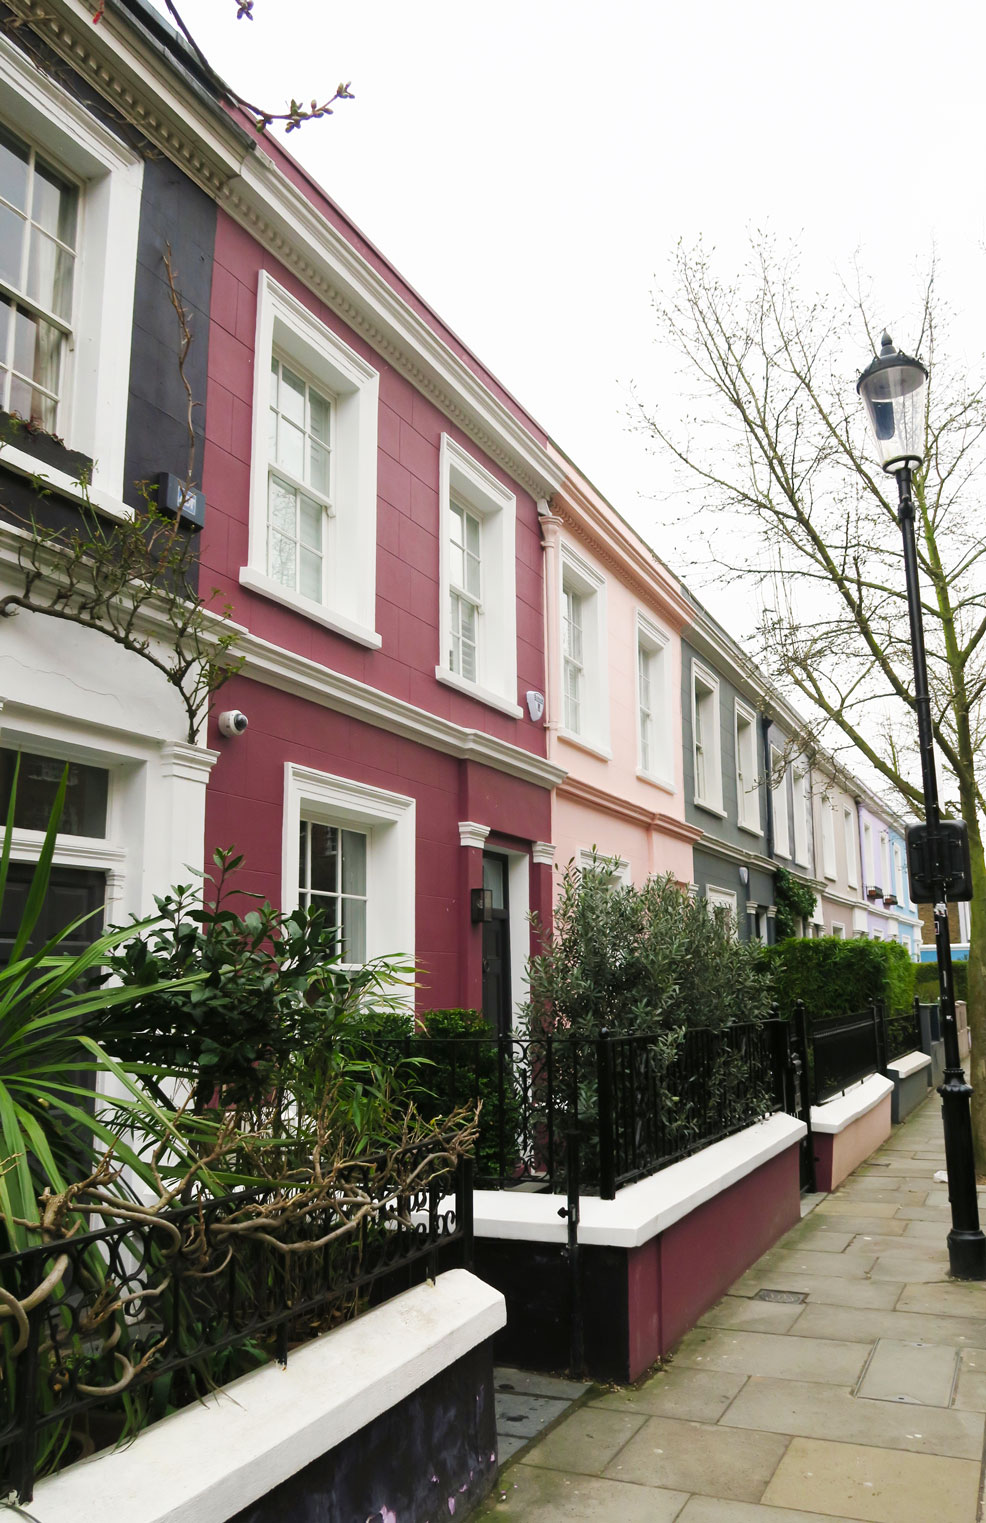 notting hill street of beautiful houses